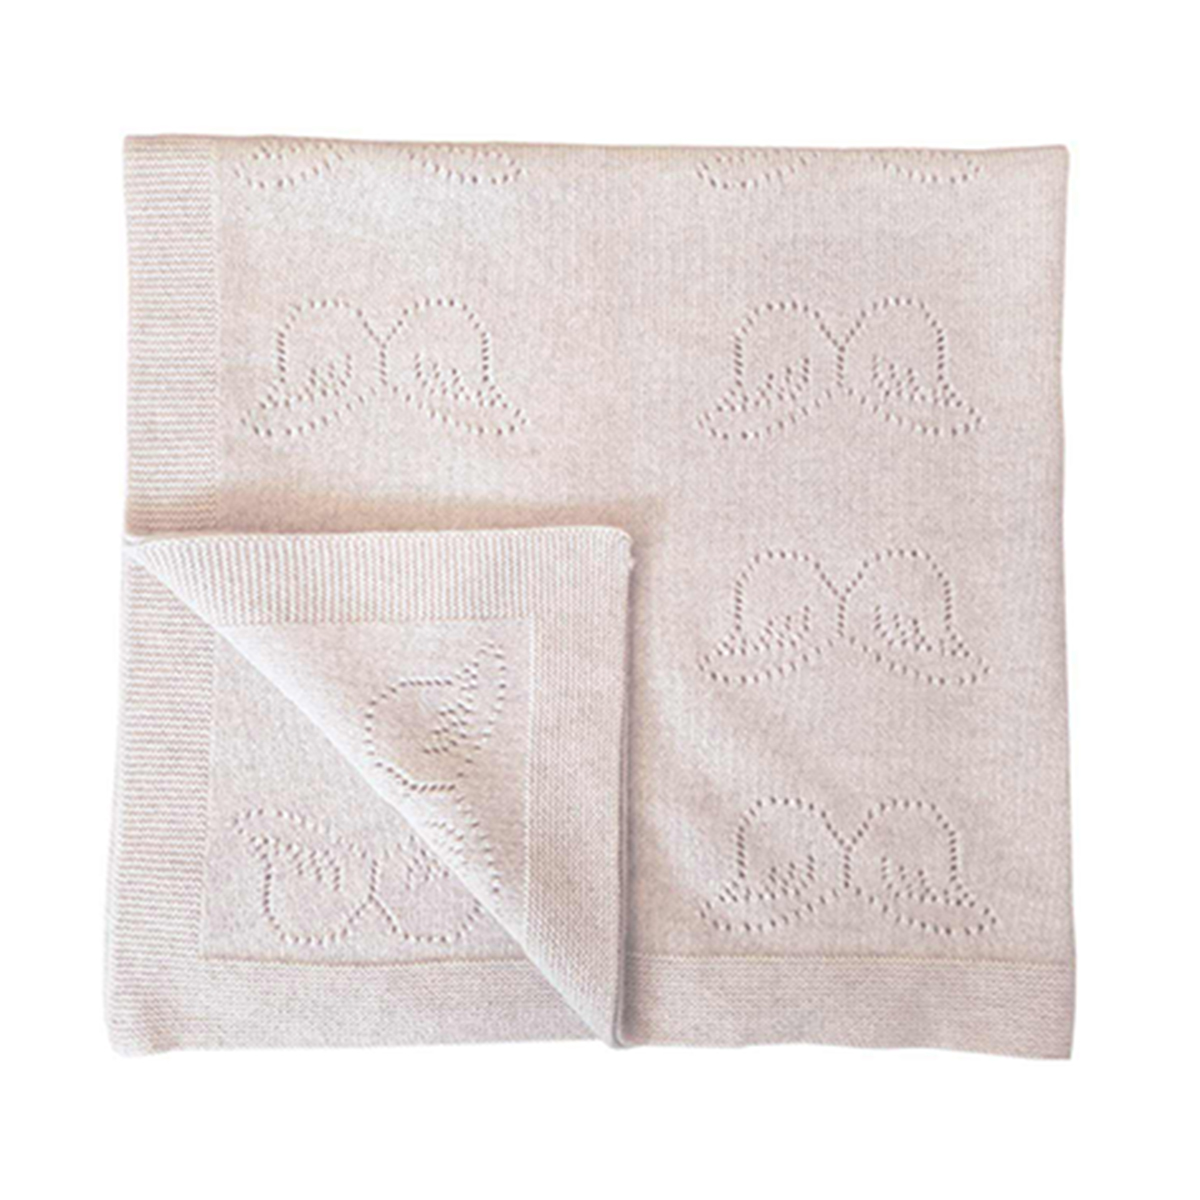 Marie Chantal Pointelle Cashmere Baby Blanket in Ivory